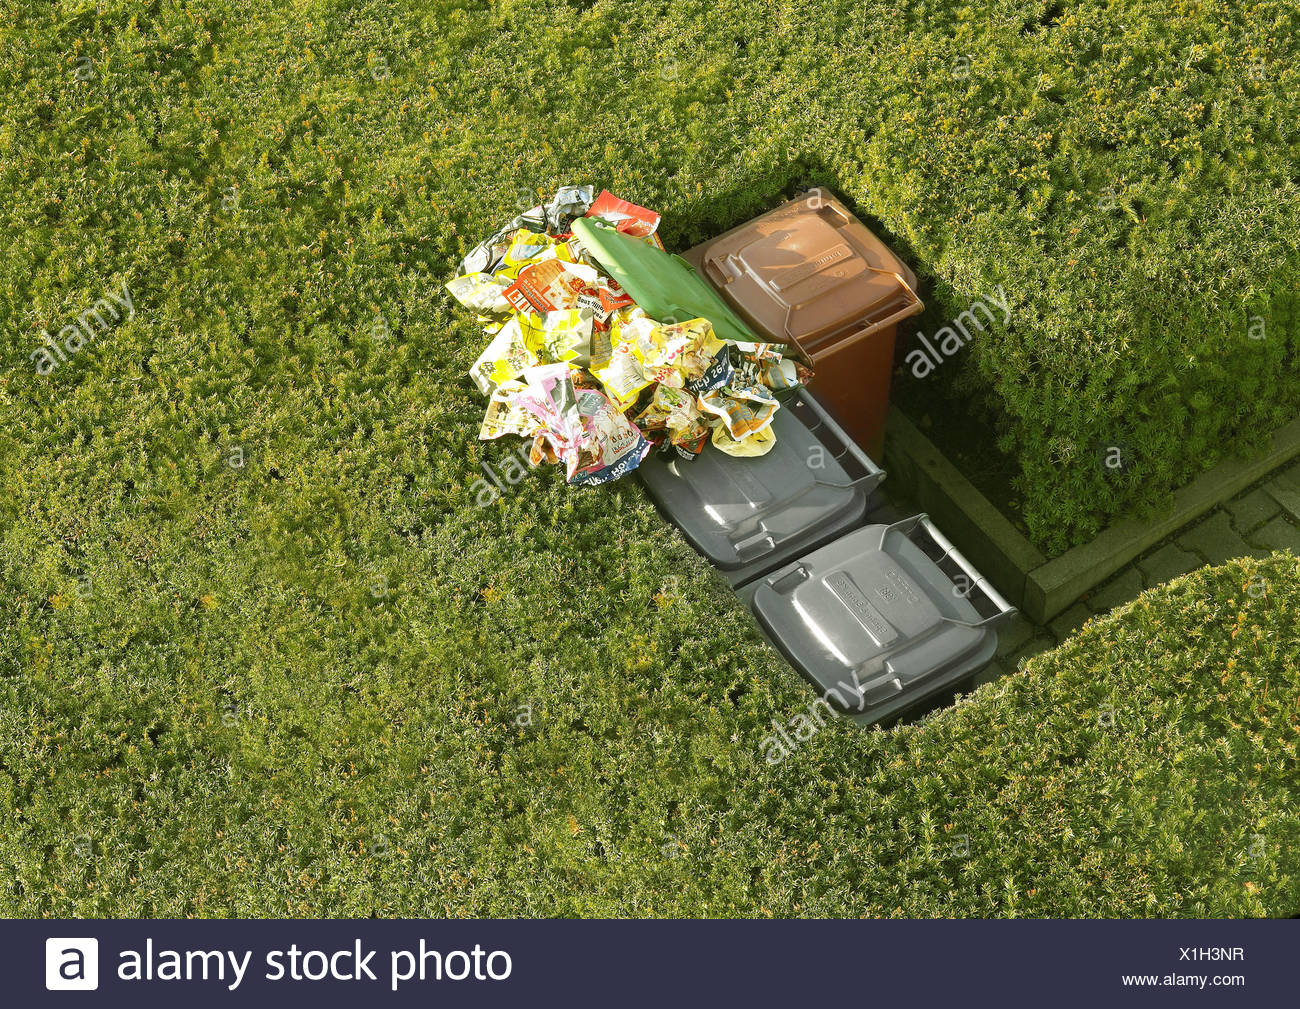 Hedges trashcans differently garbage-separation paper-ton fully overflows from above summers ornament-hedges way trashcans - Stock Image